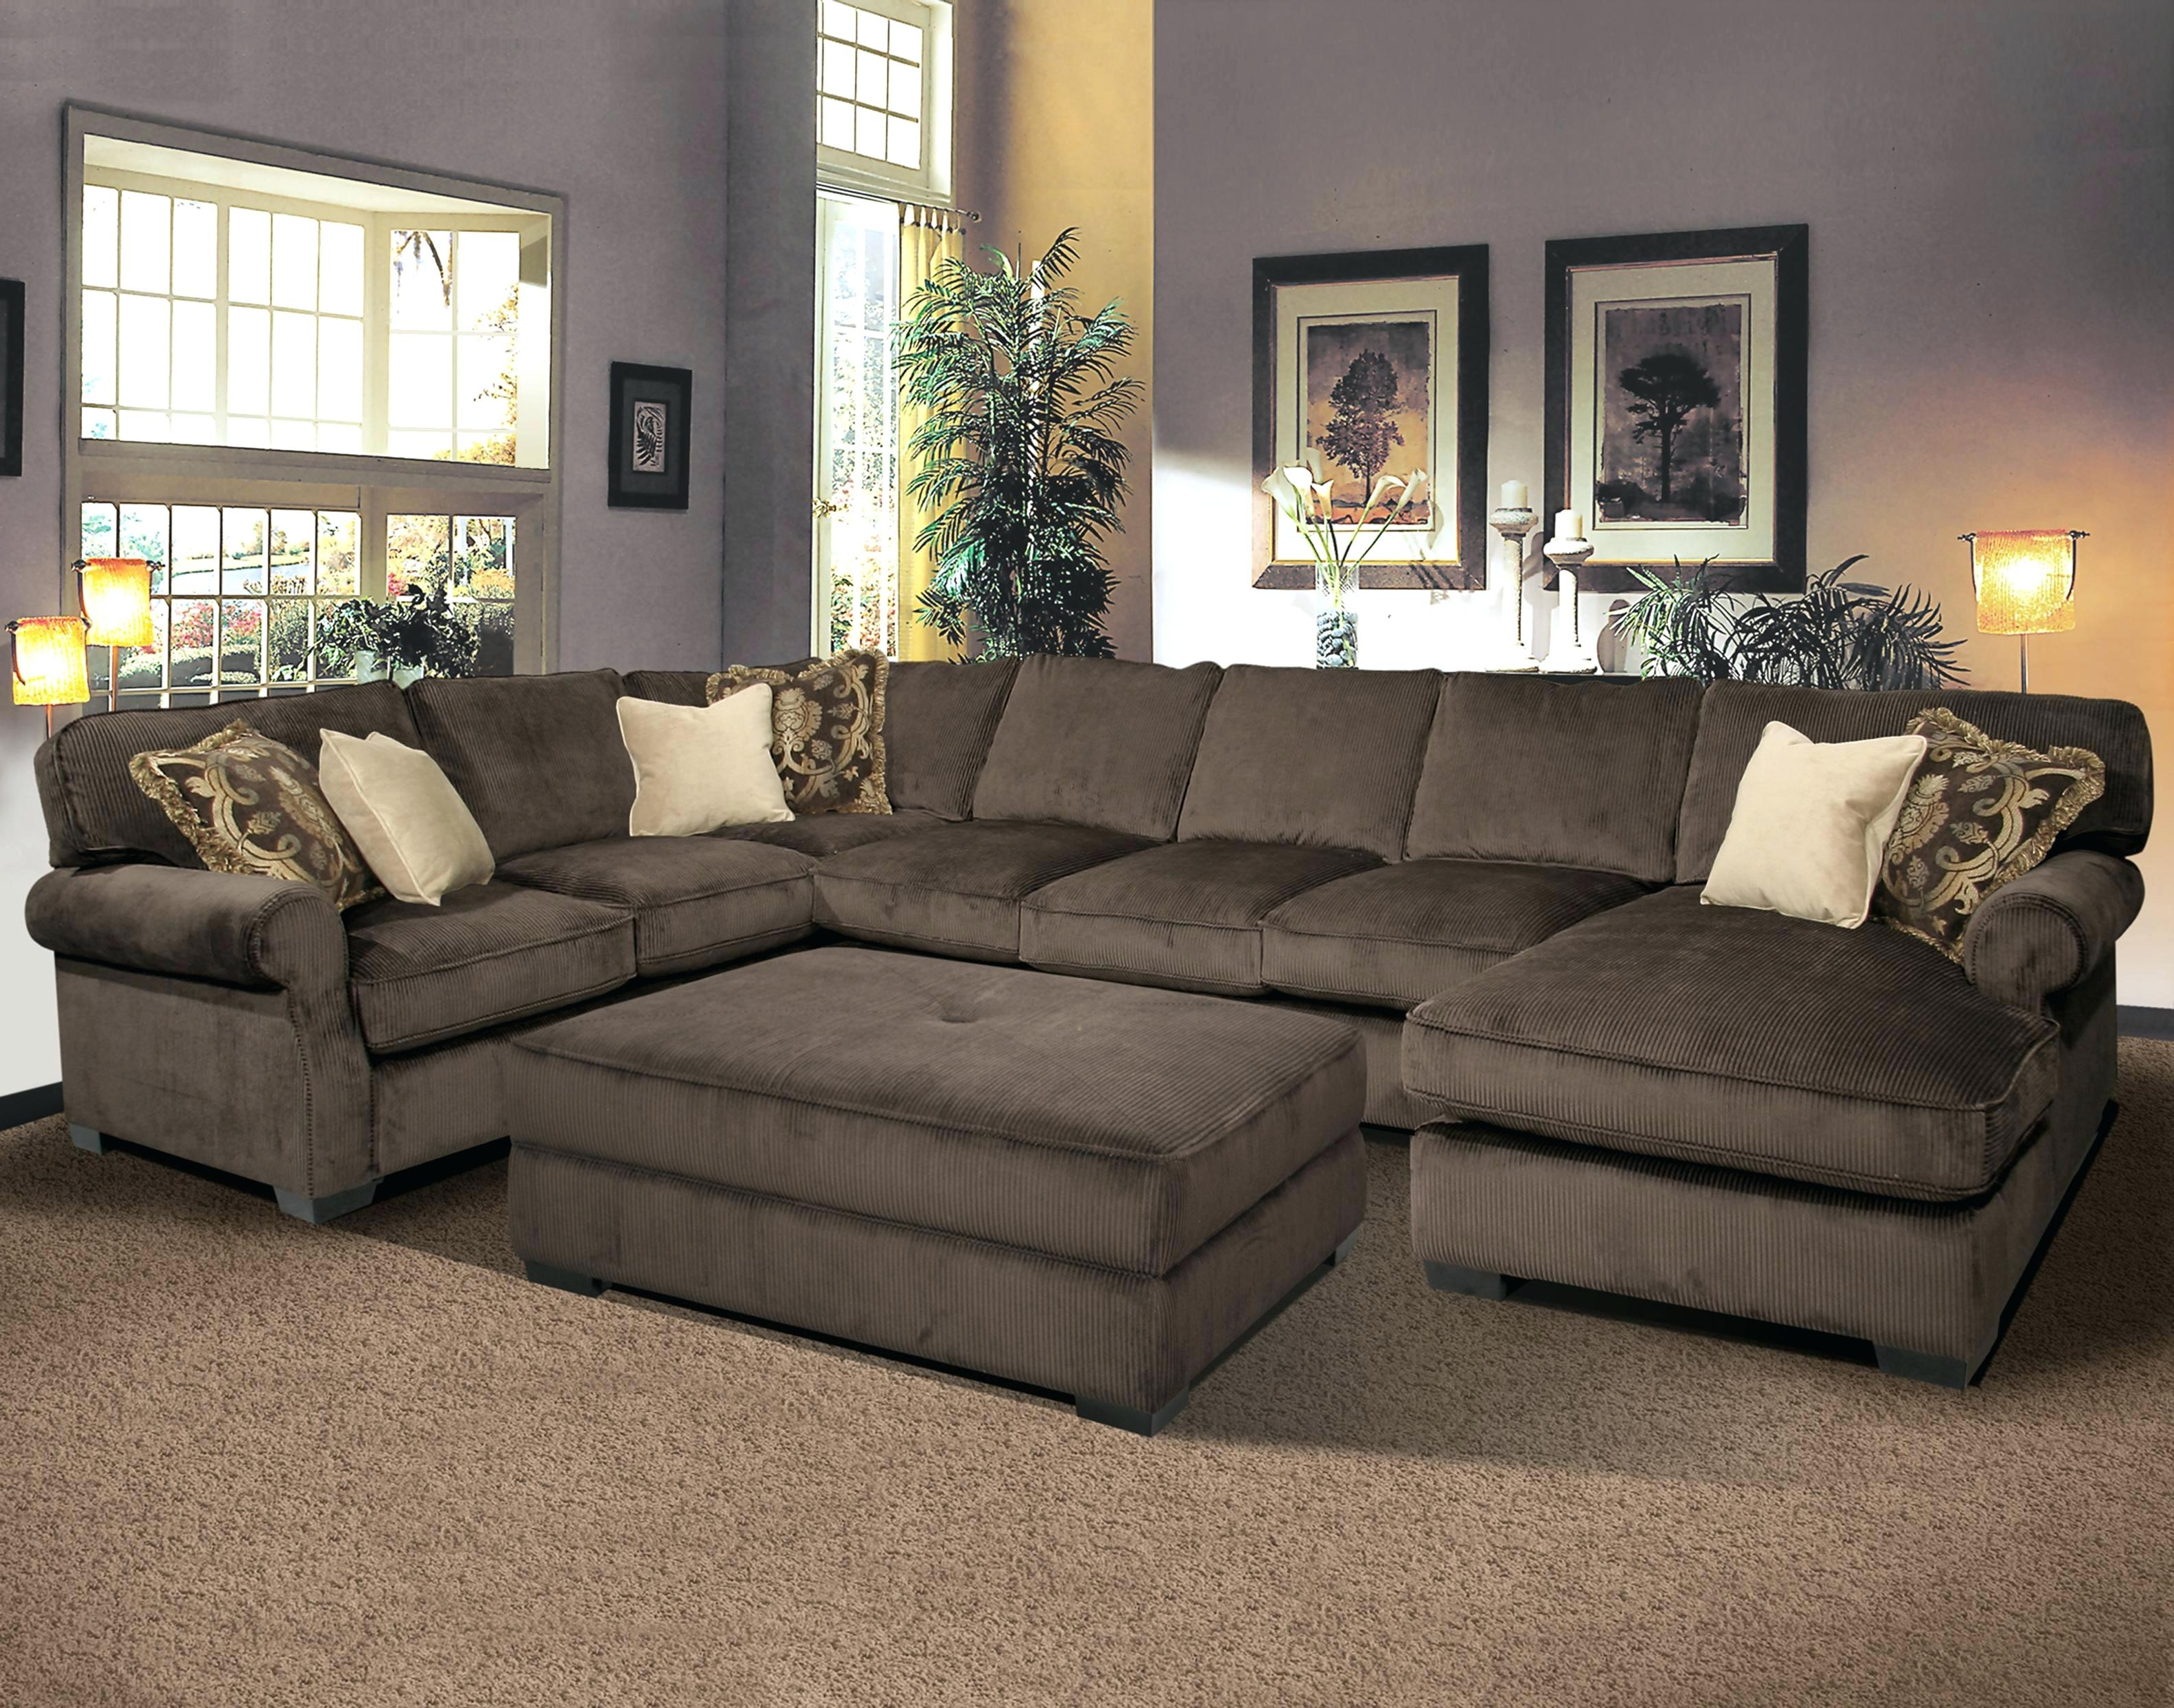 Sofas On Sale Sa Sas Sales Dublin Ireland Furniture For In Done For 2018 Closeout Sofas (View 12 of 15)